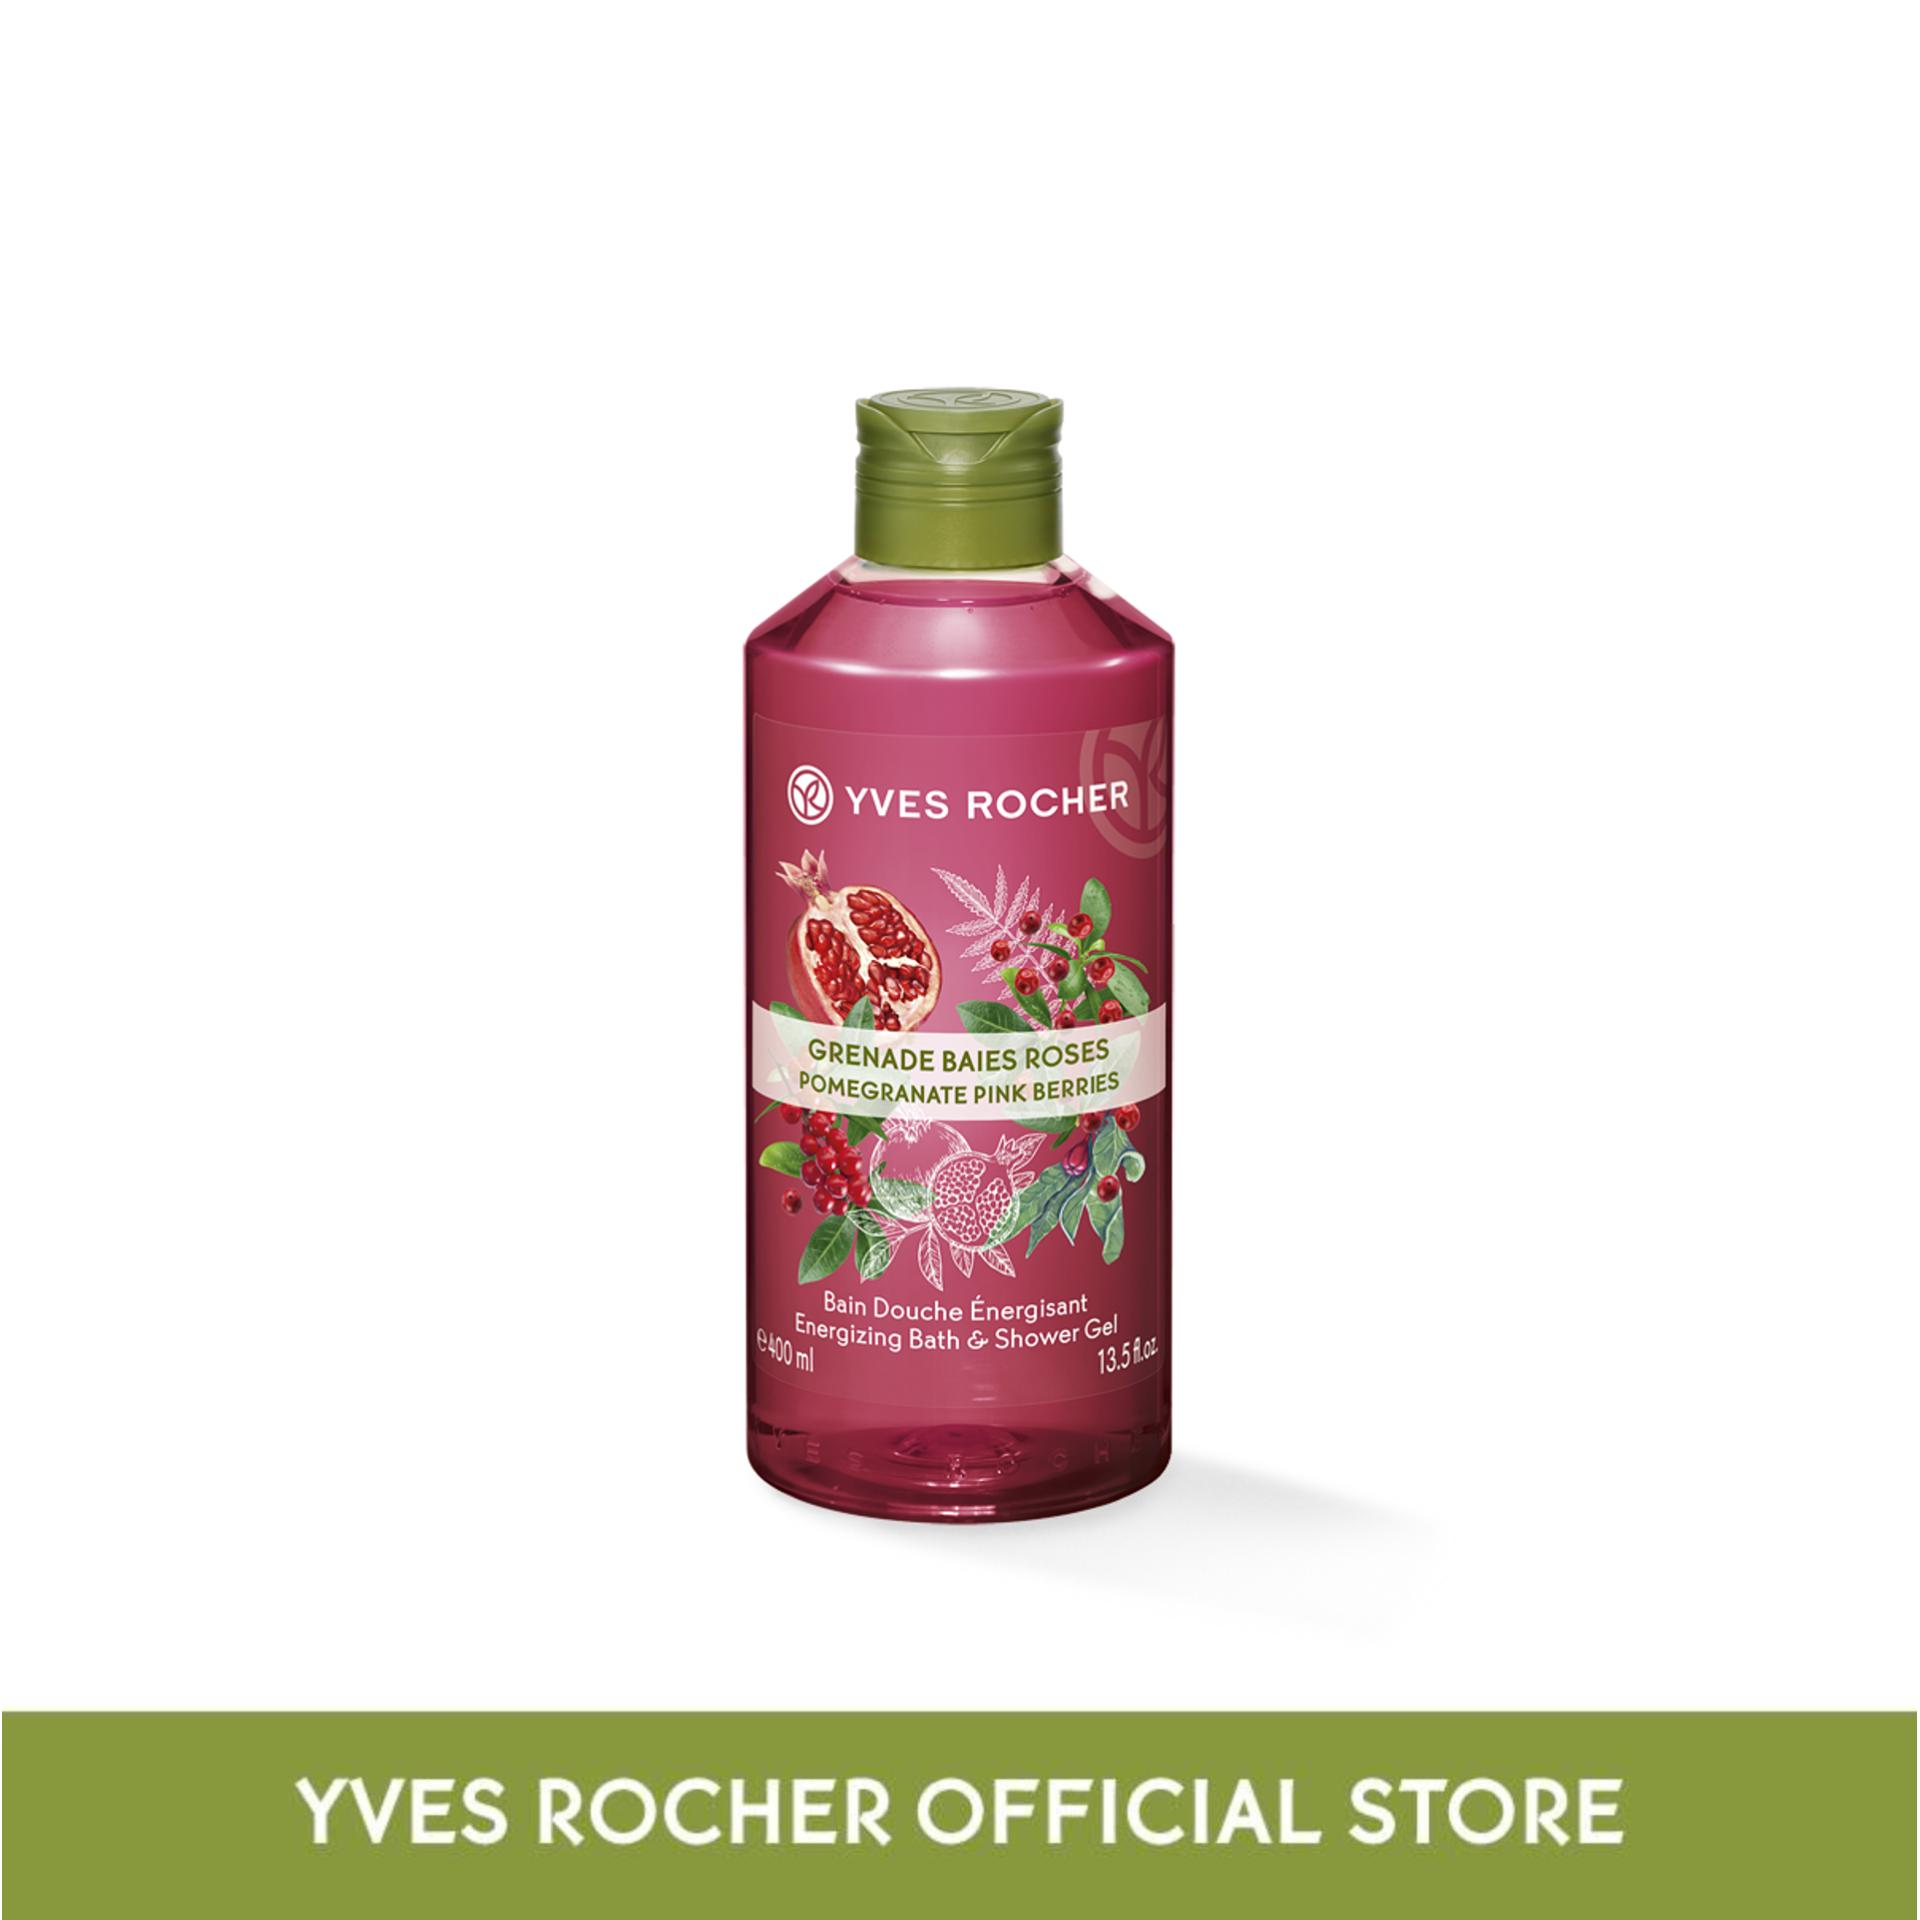 Yves Rocher Energizing Pomegranate Pink Berries Shower Gel By Yves Rocher Singapore (capitaland Merchant).